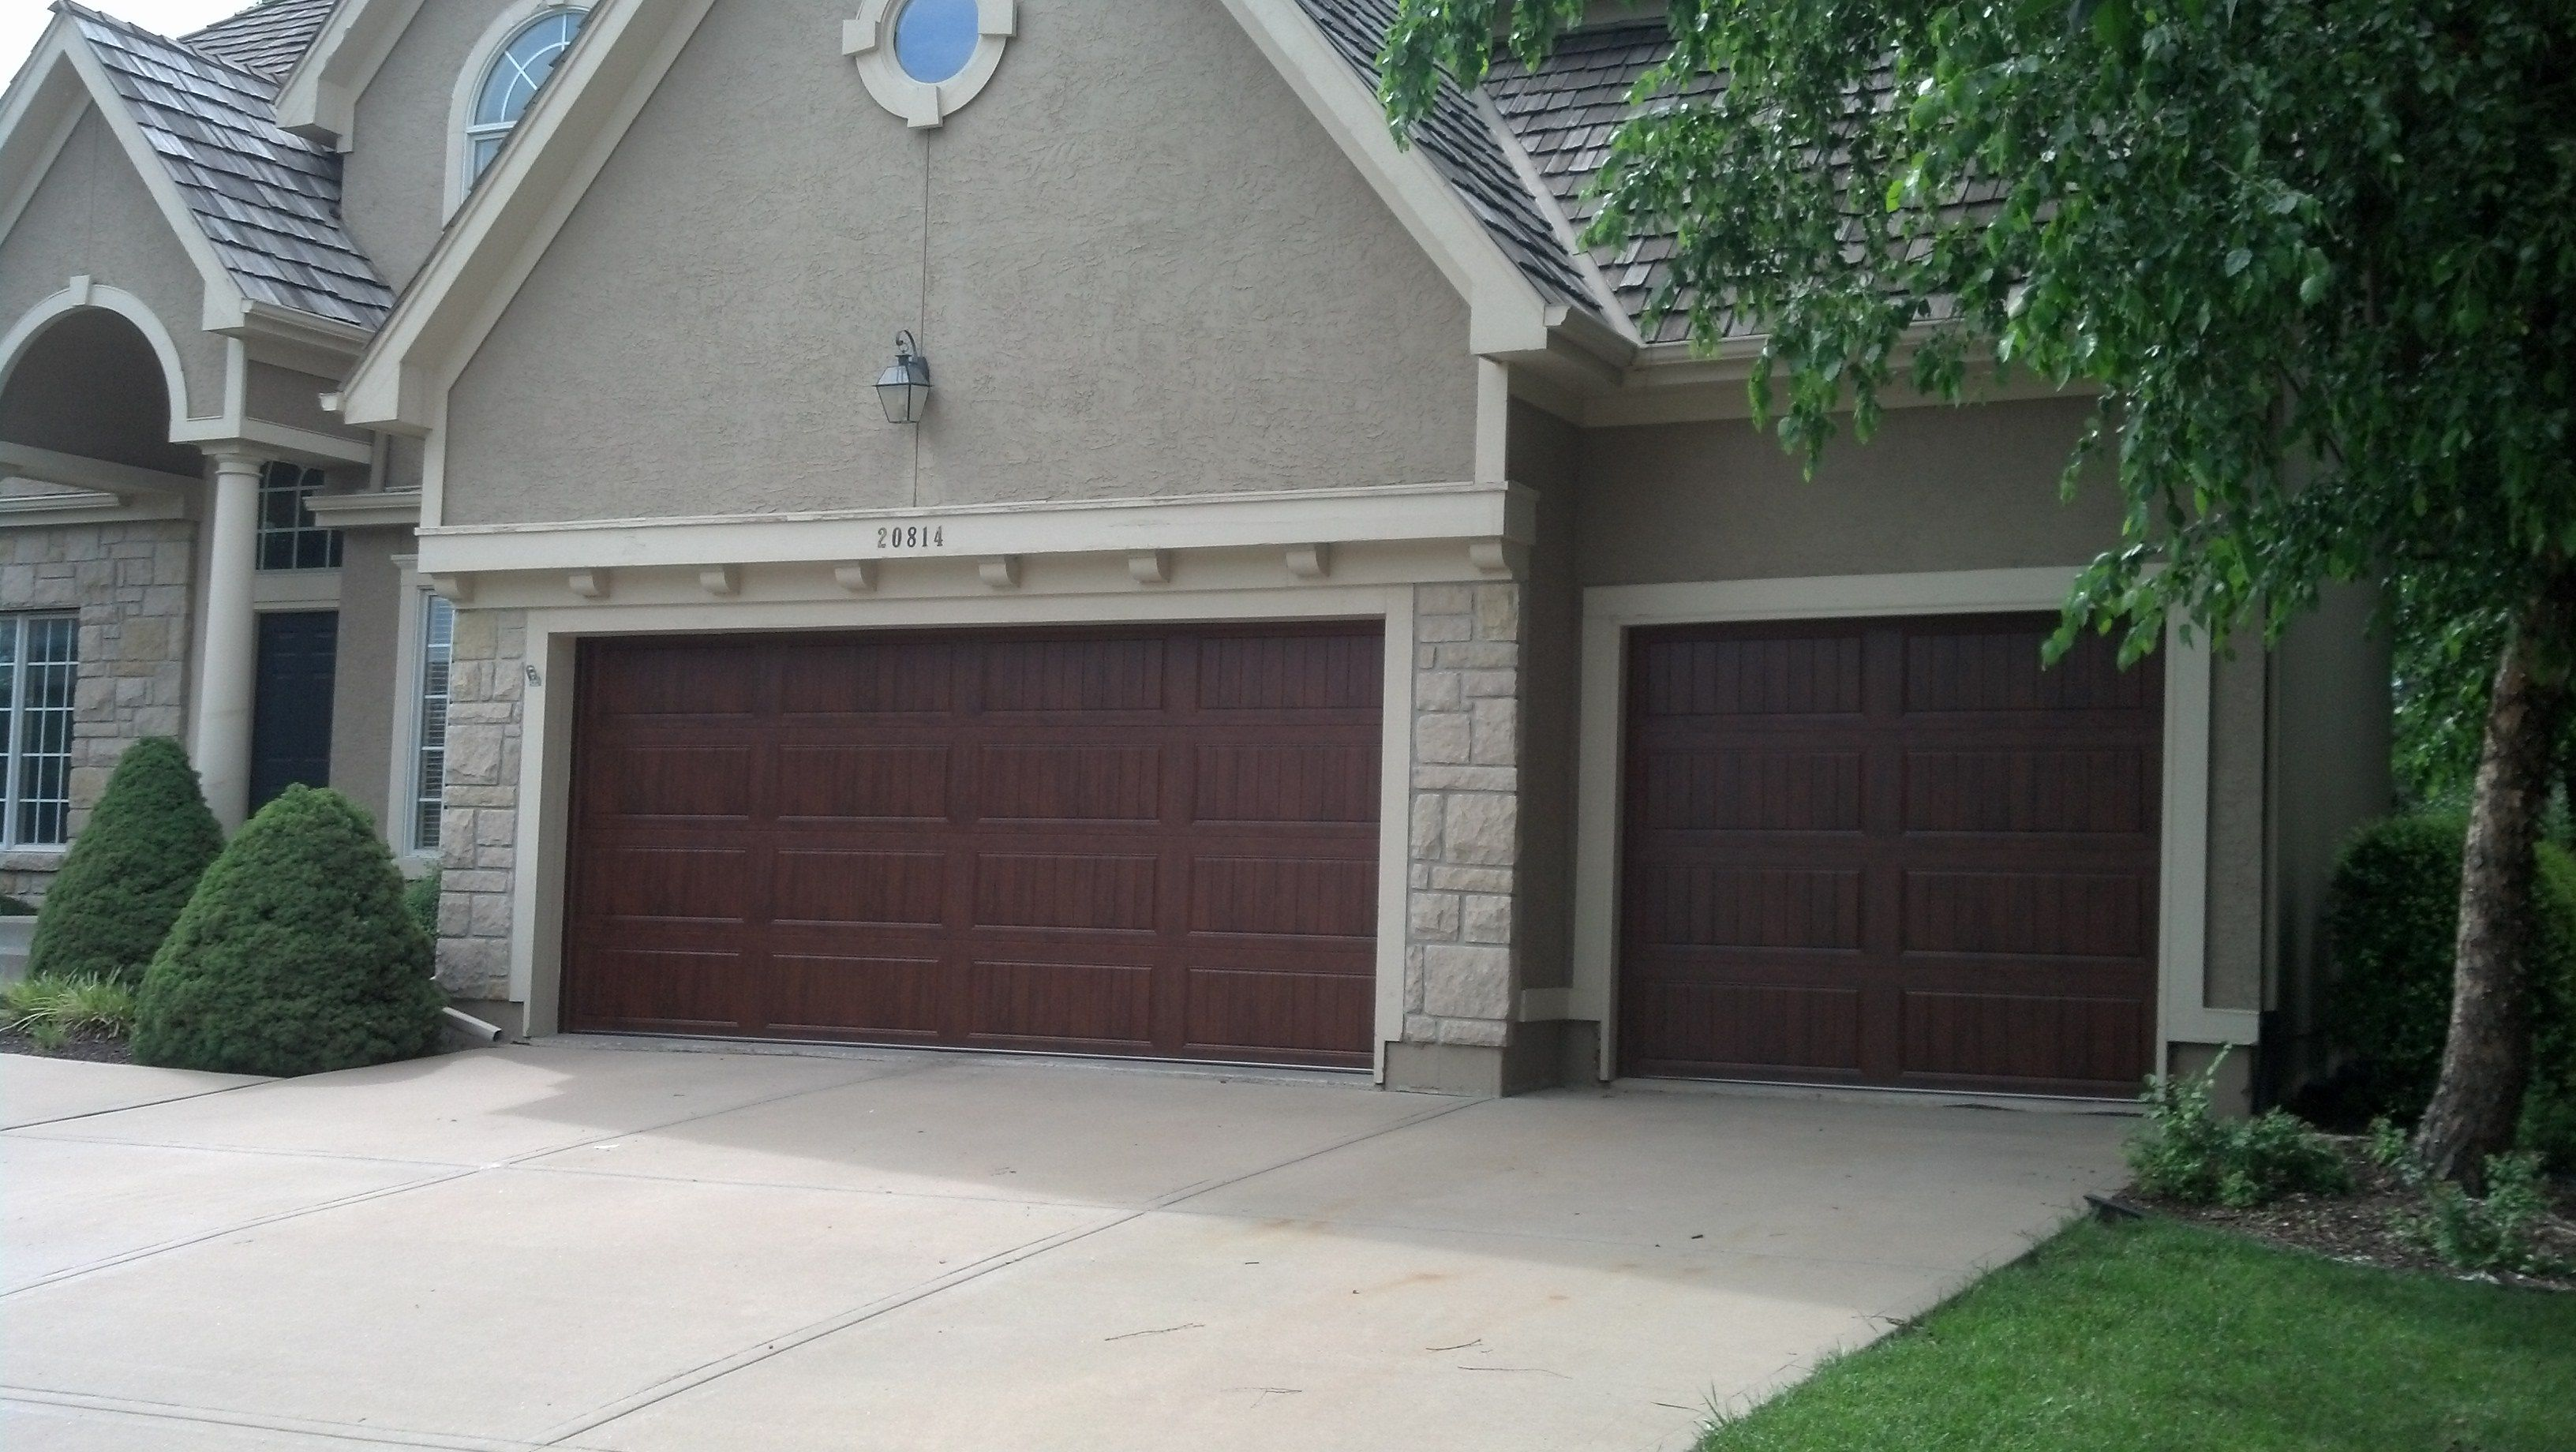 Classica northampton garage door white 9 x 8 no windows - Clopay Gallery Collection Ultragrain Finish Double Single Garage Doors Installed By Royal Garage Door